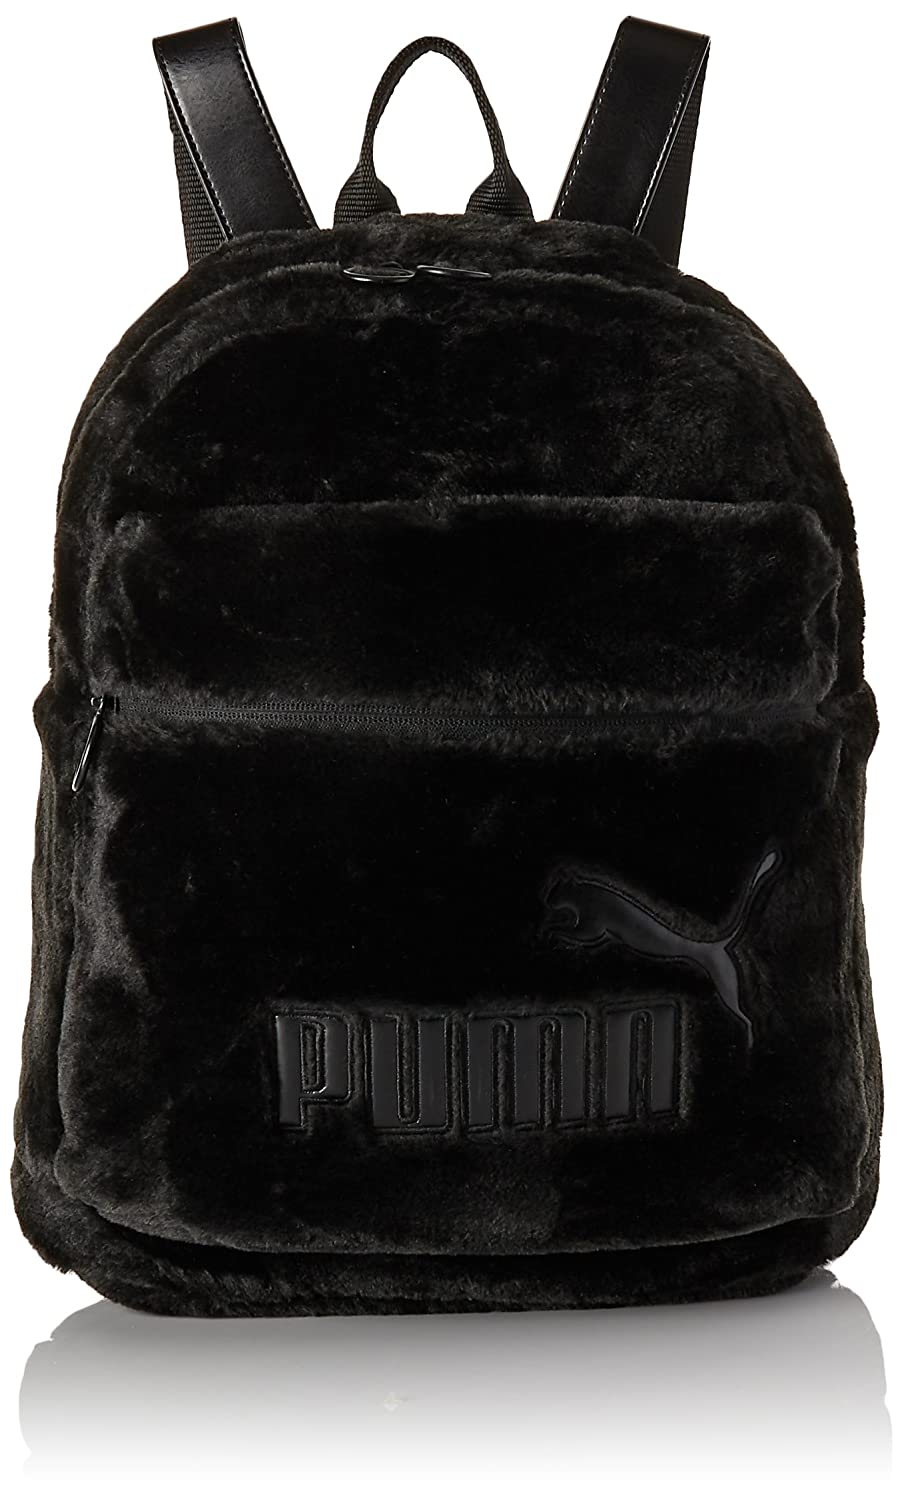 37b4455042 PUMA Backpack woman 075111 01 WNS FUR BACKPACK UNICA Nero: Amazon.co.uk:  Clothing